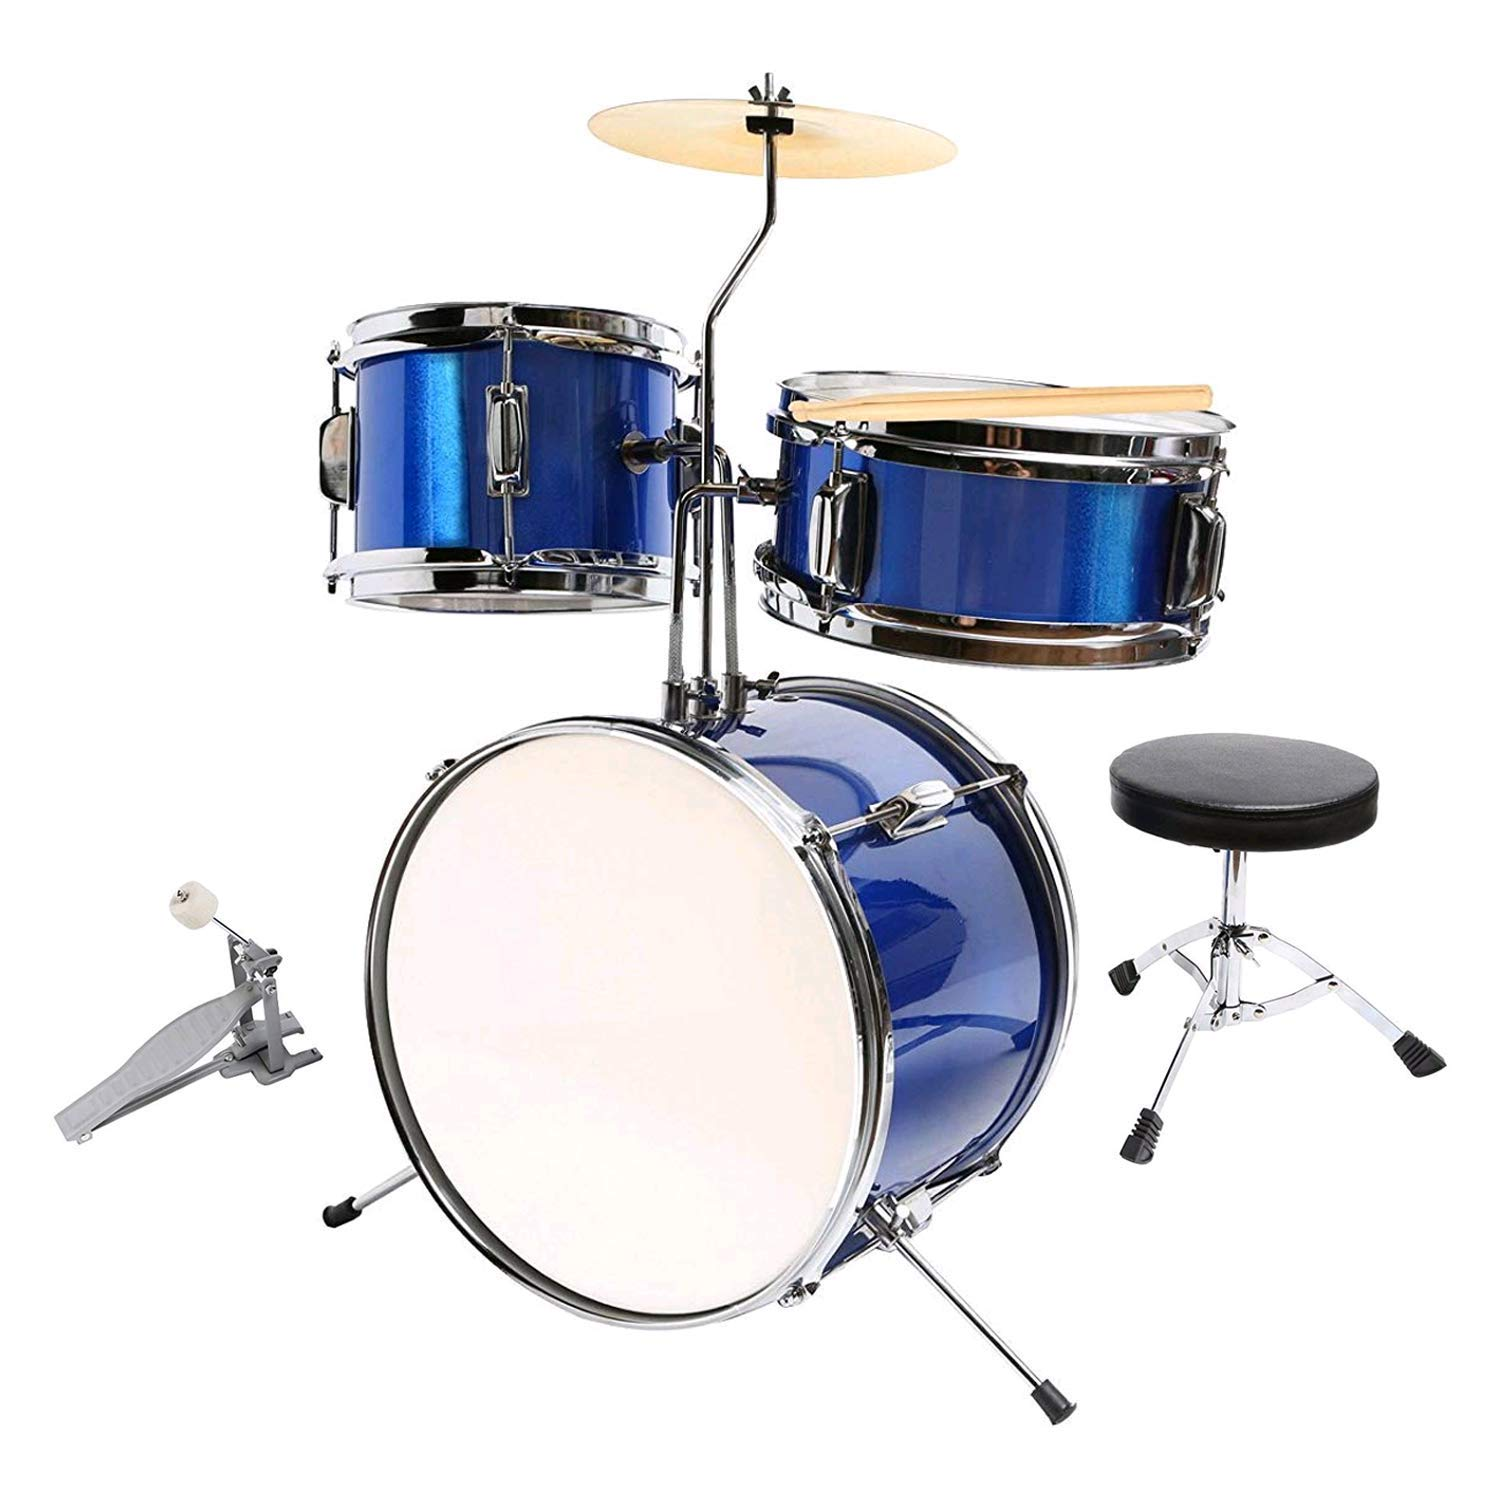 LAGRIMA 13 inch 3-Piece Kids Beginner Drum Percussion Musical Instrument Set with Adjustable Throne, Cymbal, Drum Pedal and Drumsticks(Blue)